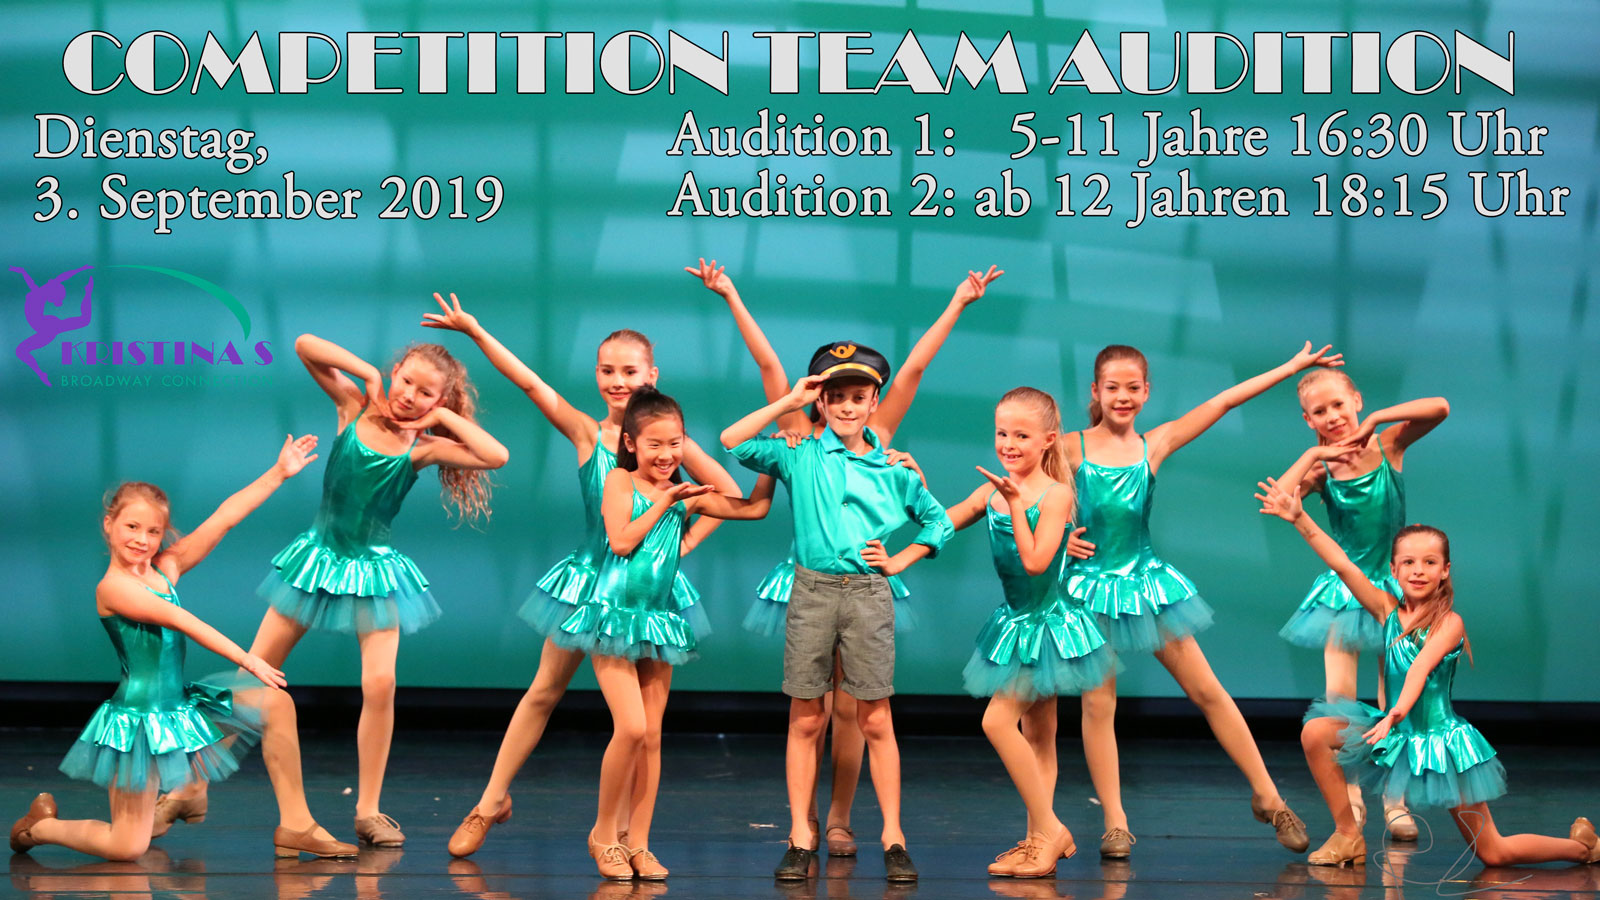 Competition Team Audition 2019